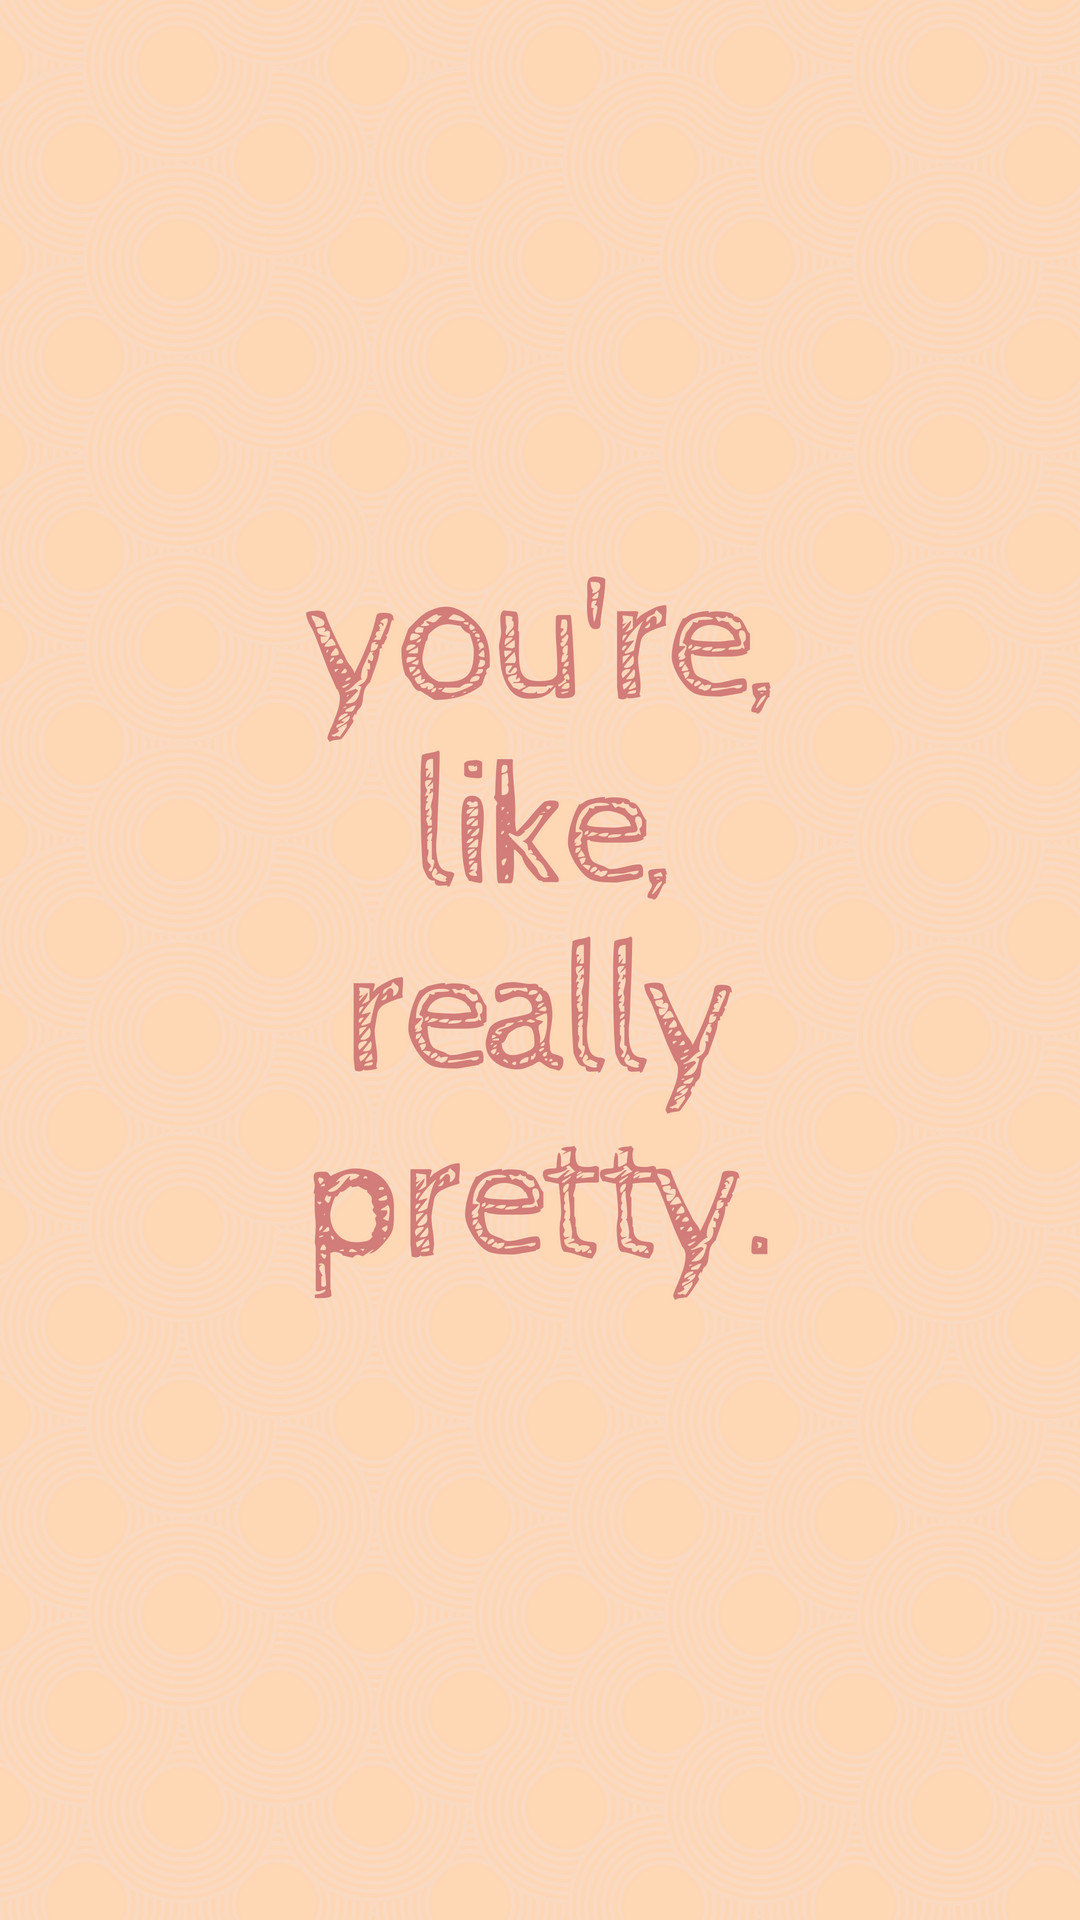 1080x1920 Phone Wallpaper - phone background - you're like really pretty - boost your  confidence with these phone backgrounds